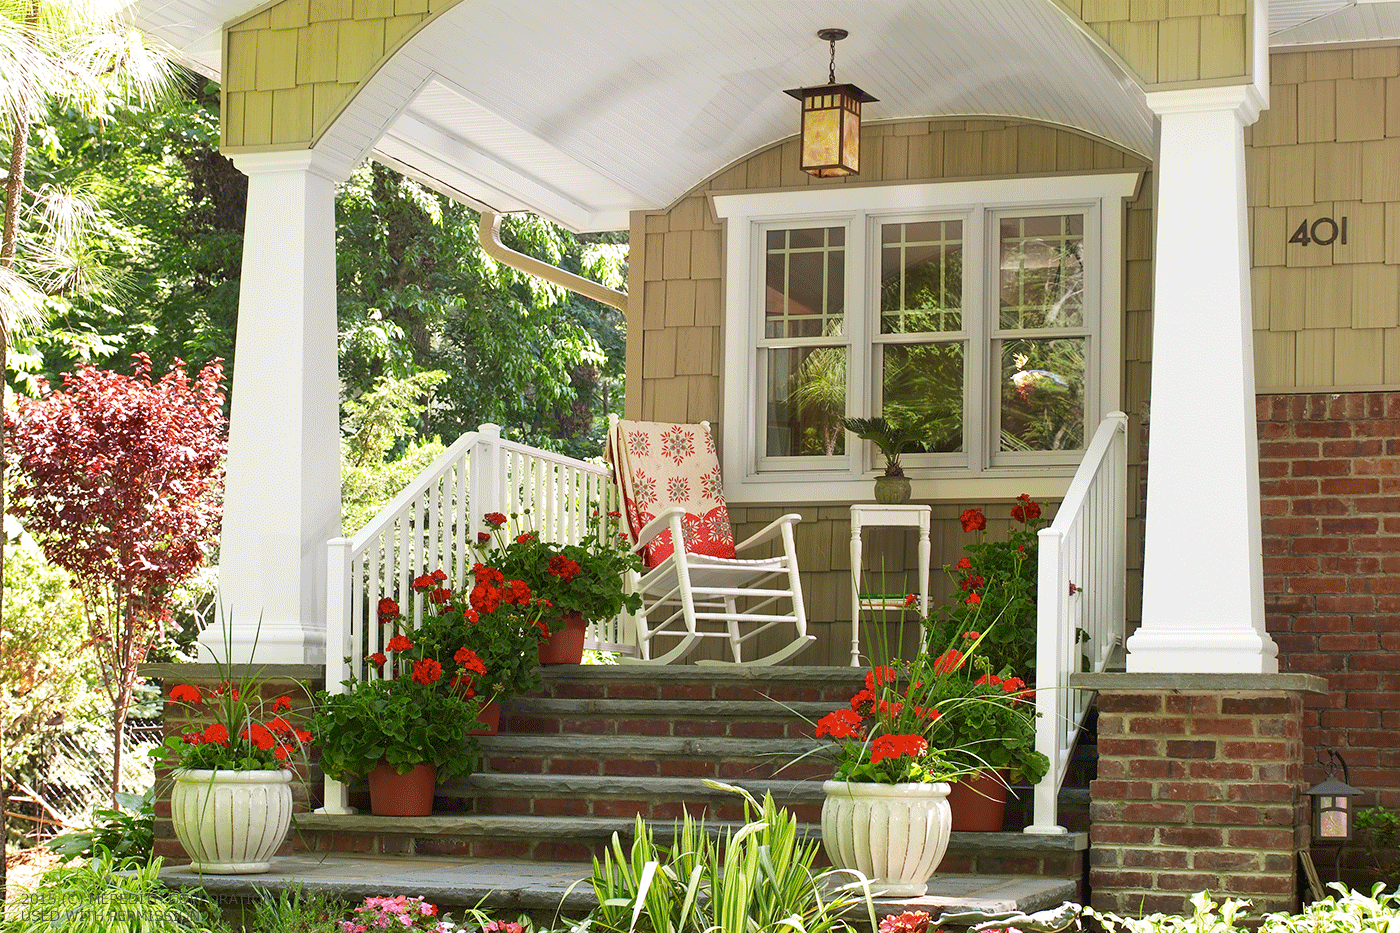 Improve Your Curb Appeal: How to Make a Great First Impression - bhgrelife.com